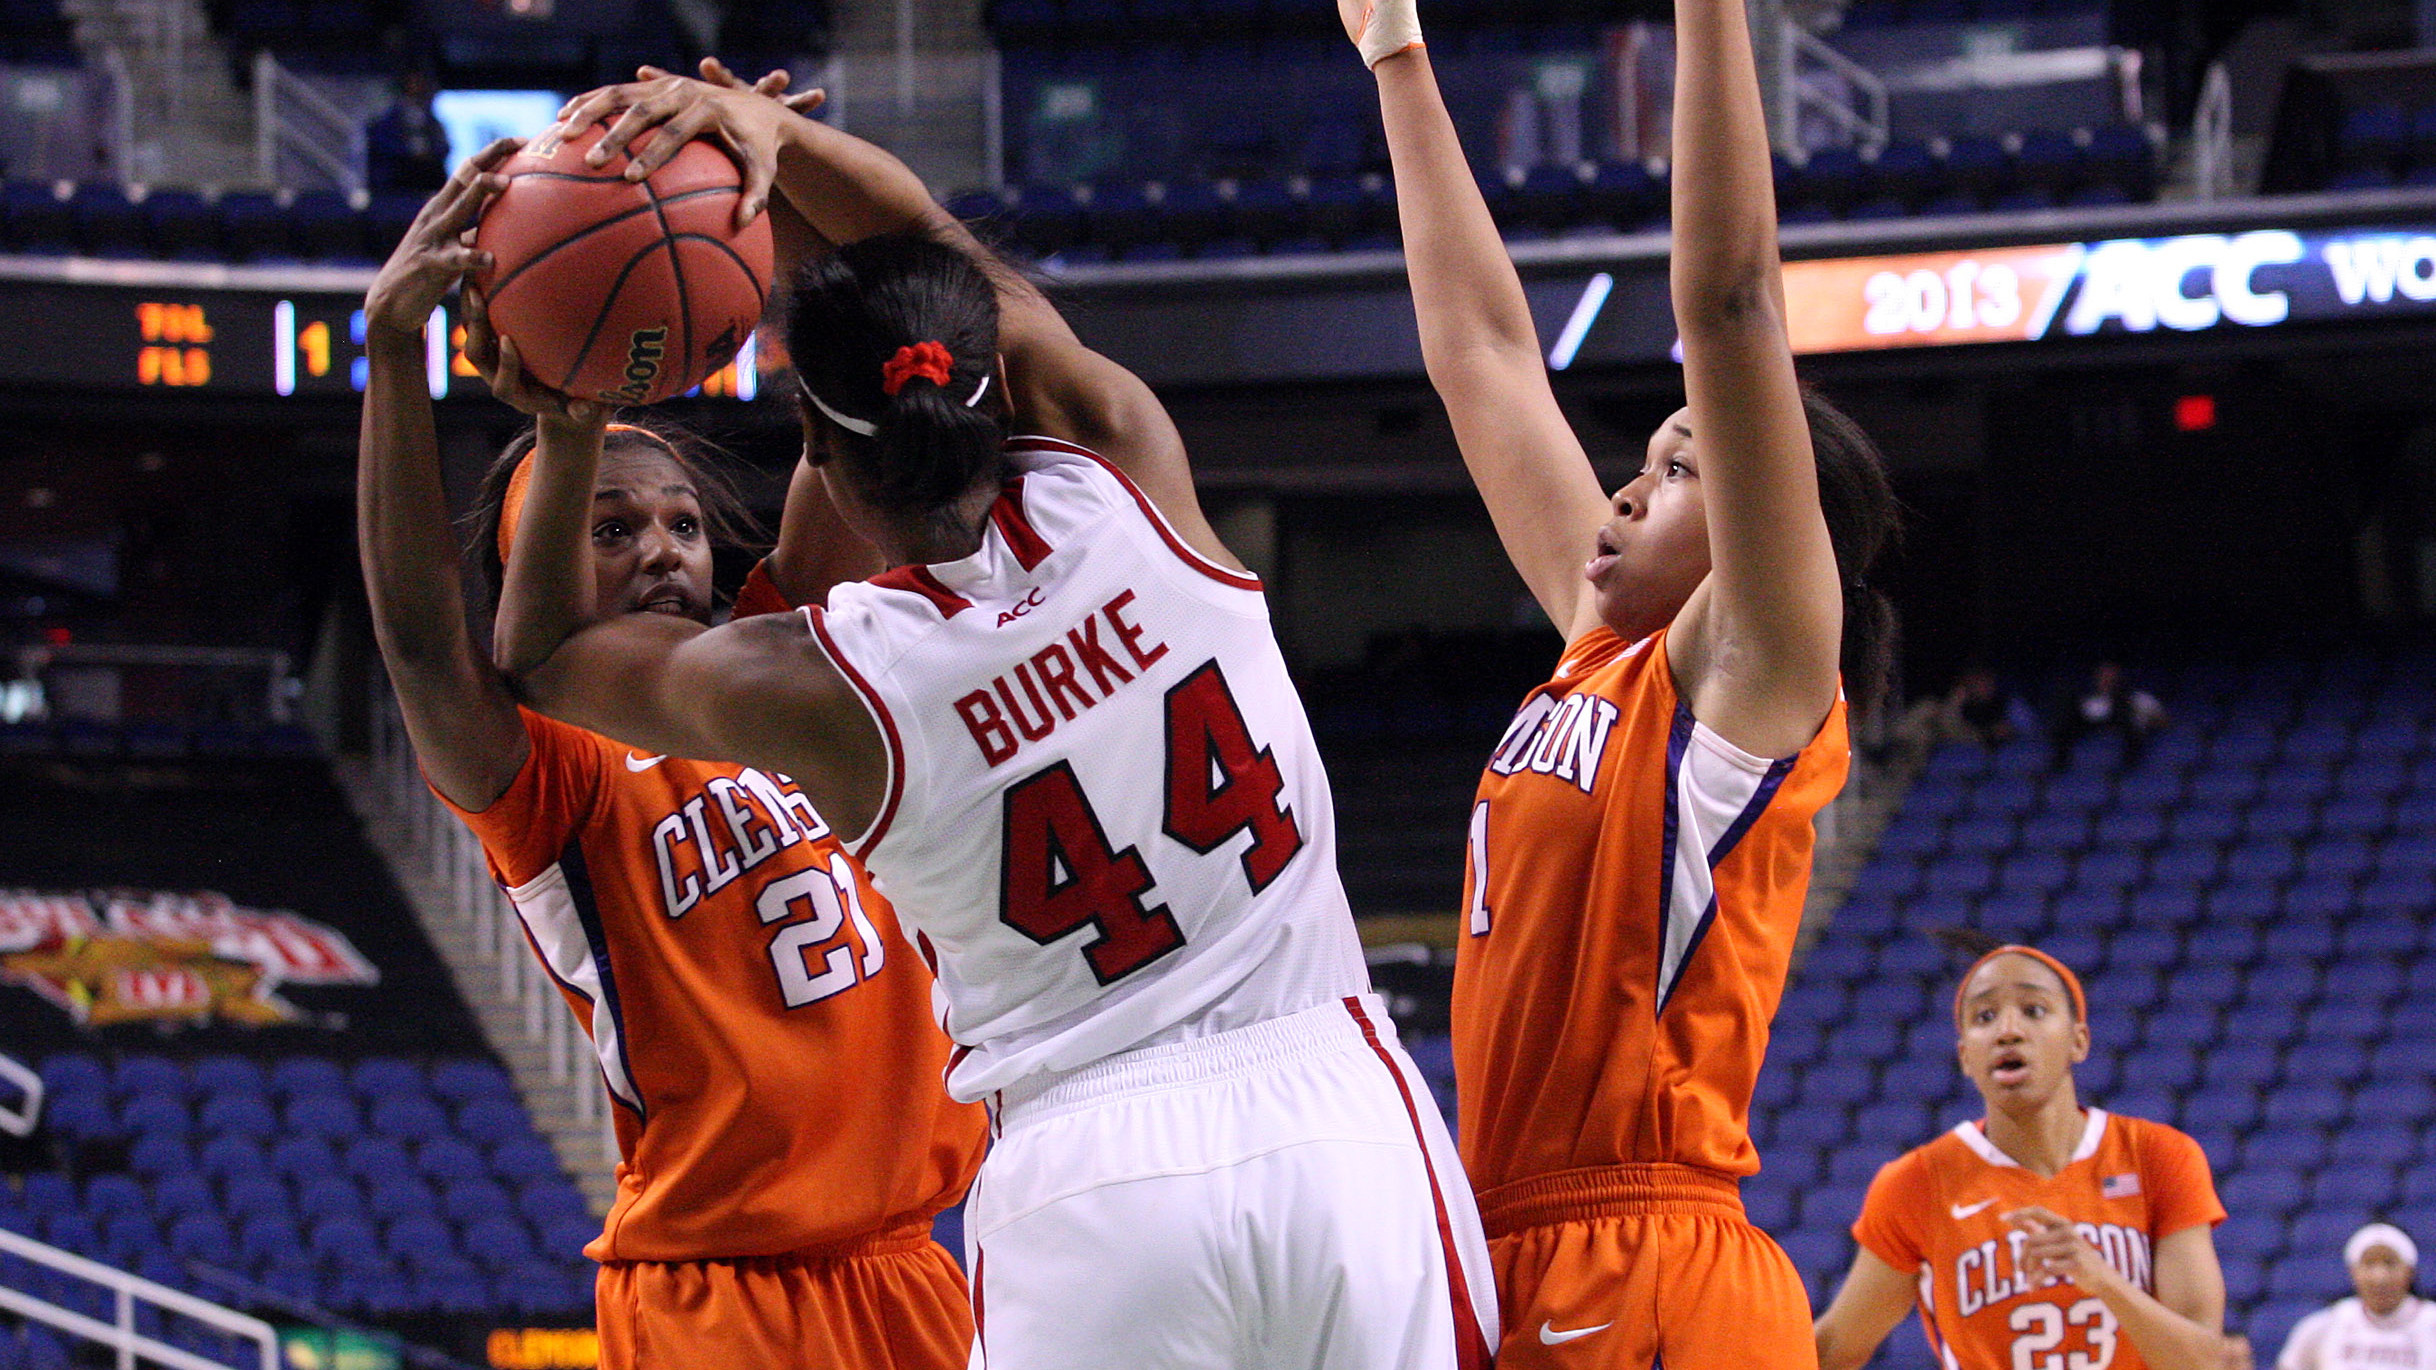 Lady Tigers Falter Late to NC State